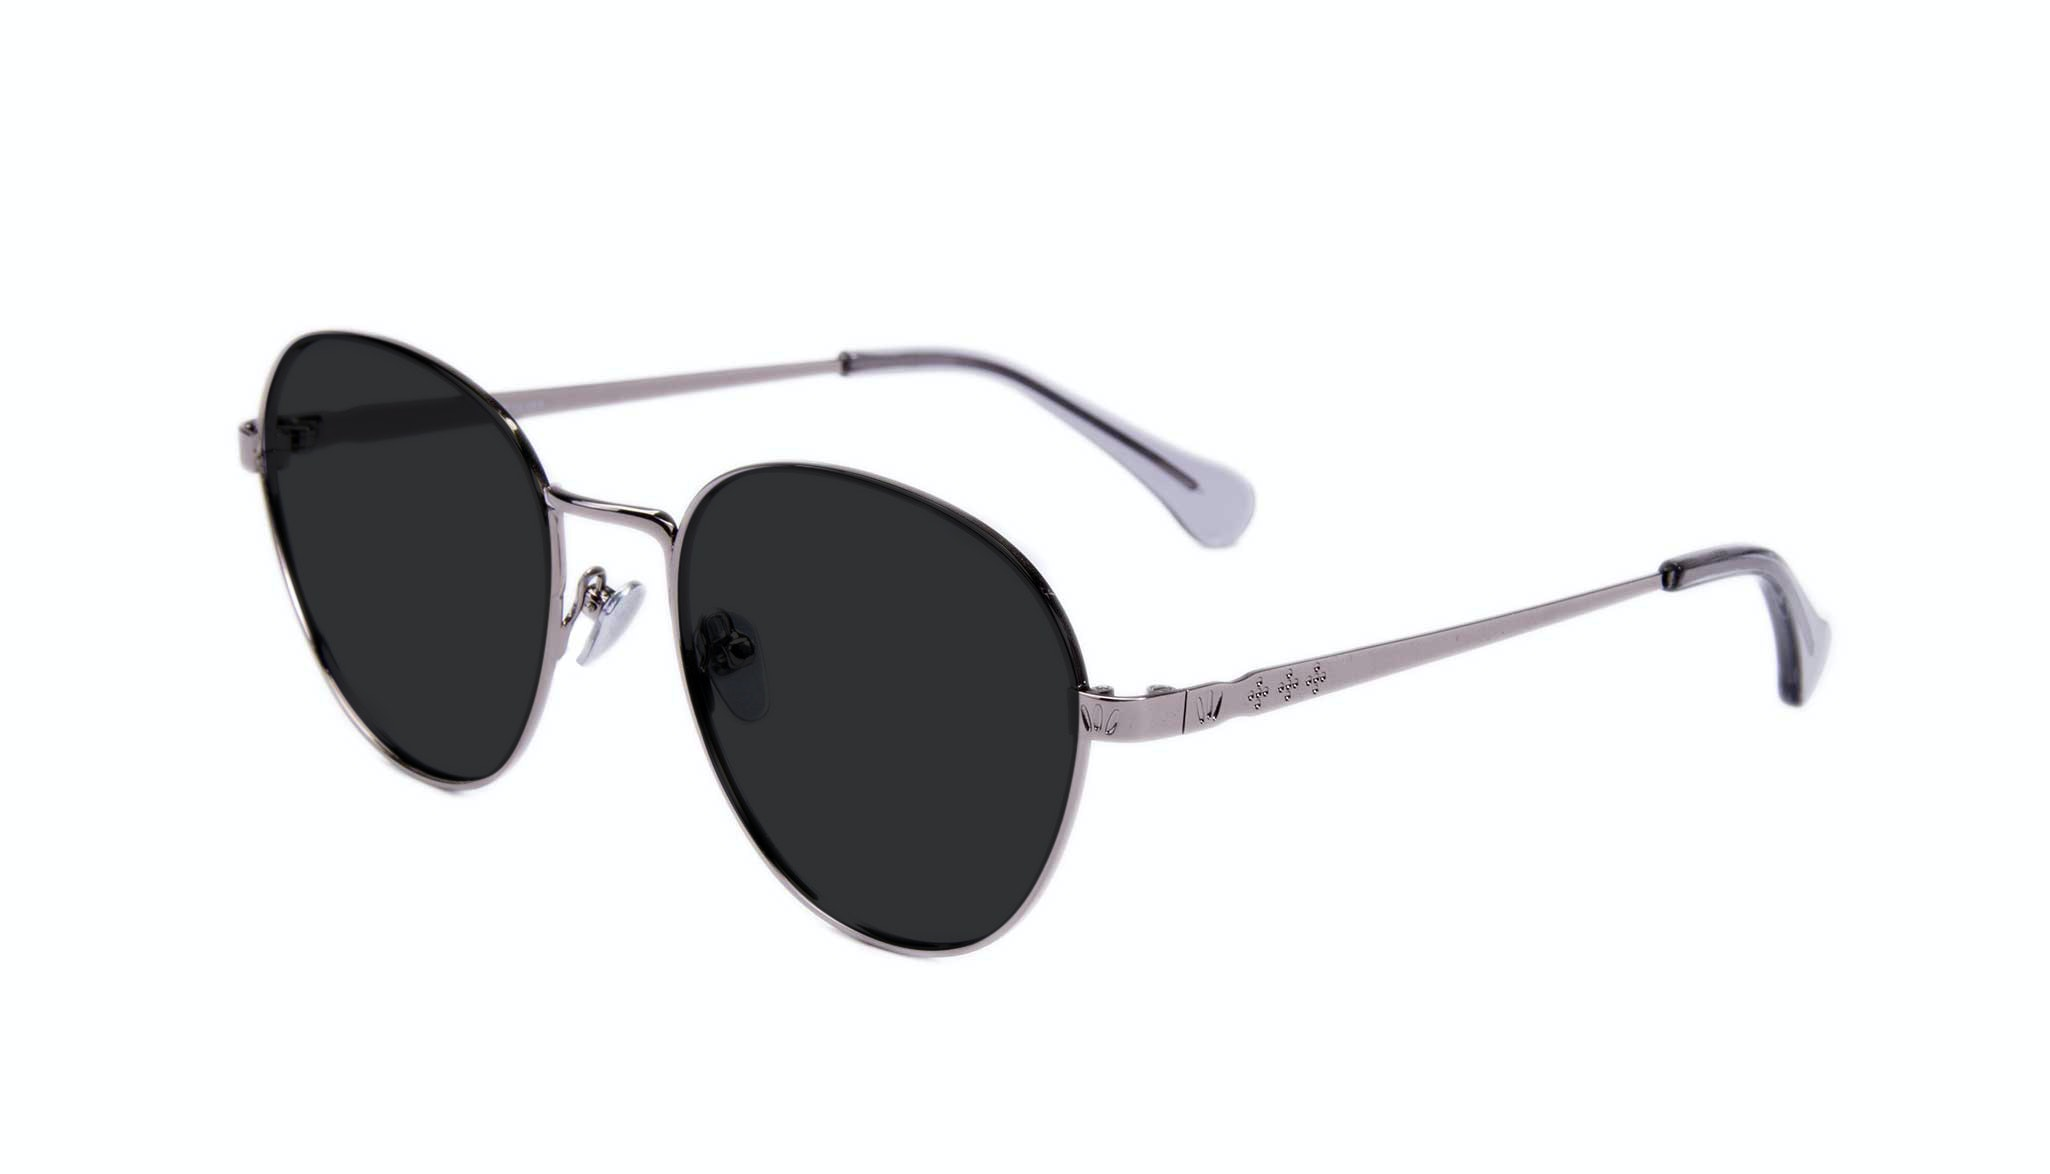 Affordable Fashion Glasses Round Sunglasses Women Brace Silver Tilt